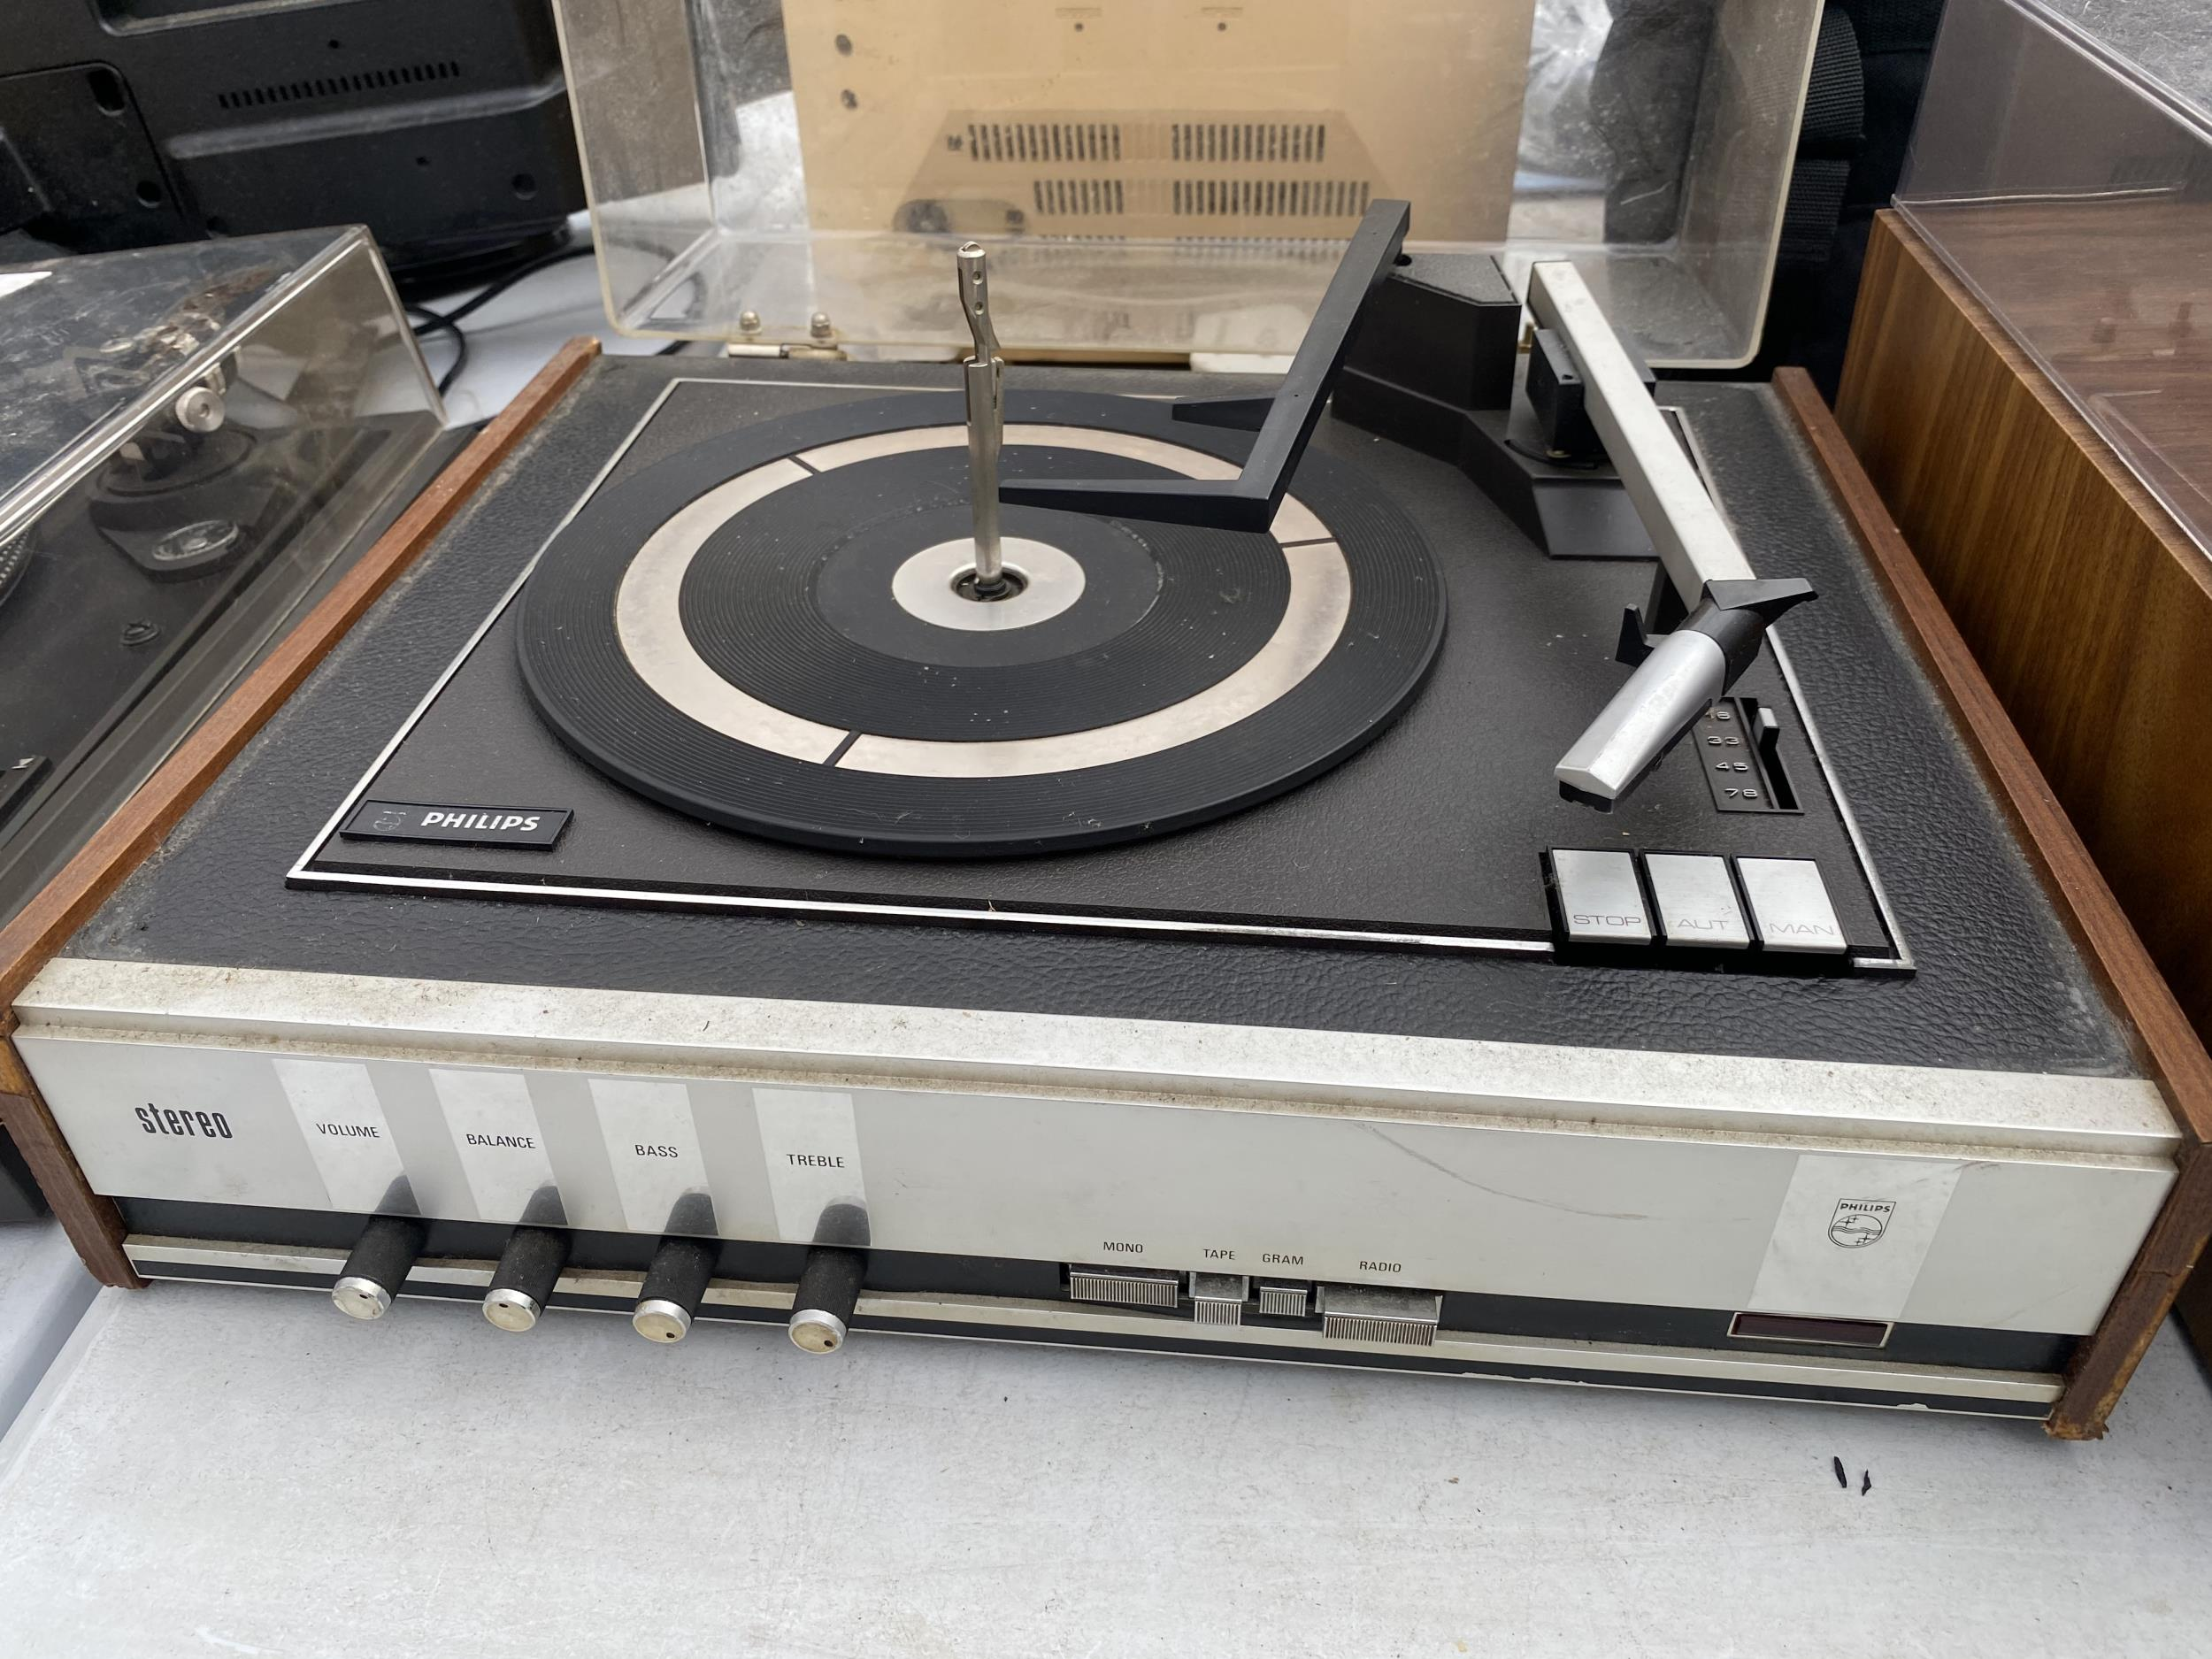 A CASED PHILIPS RECORD DECK - Image 2 of 2